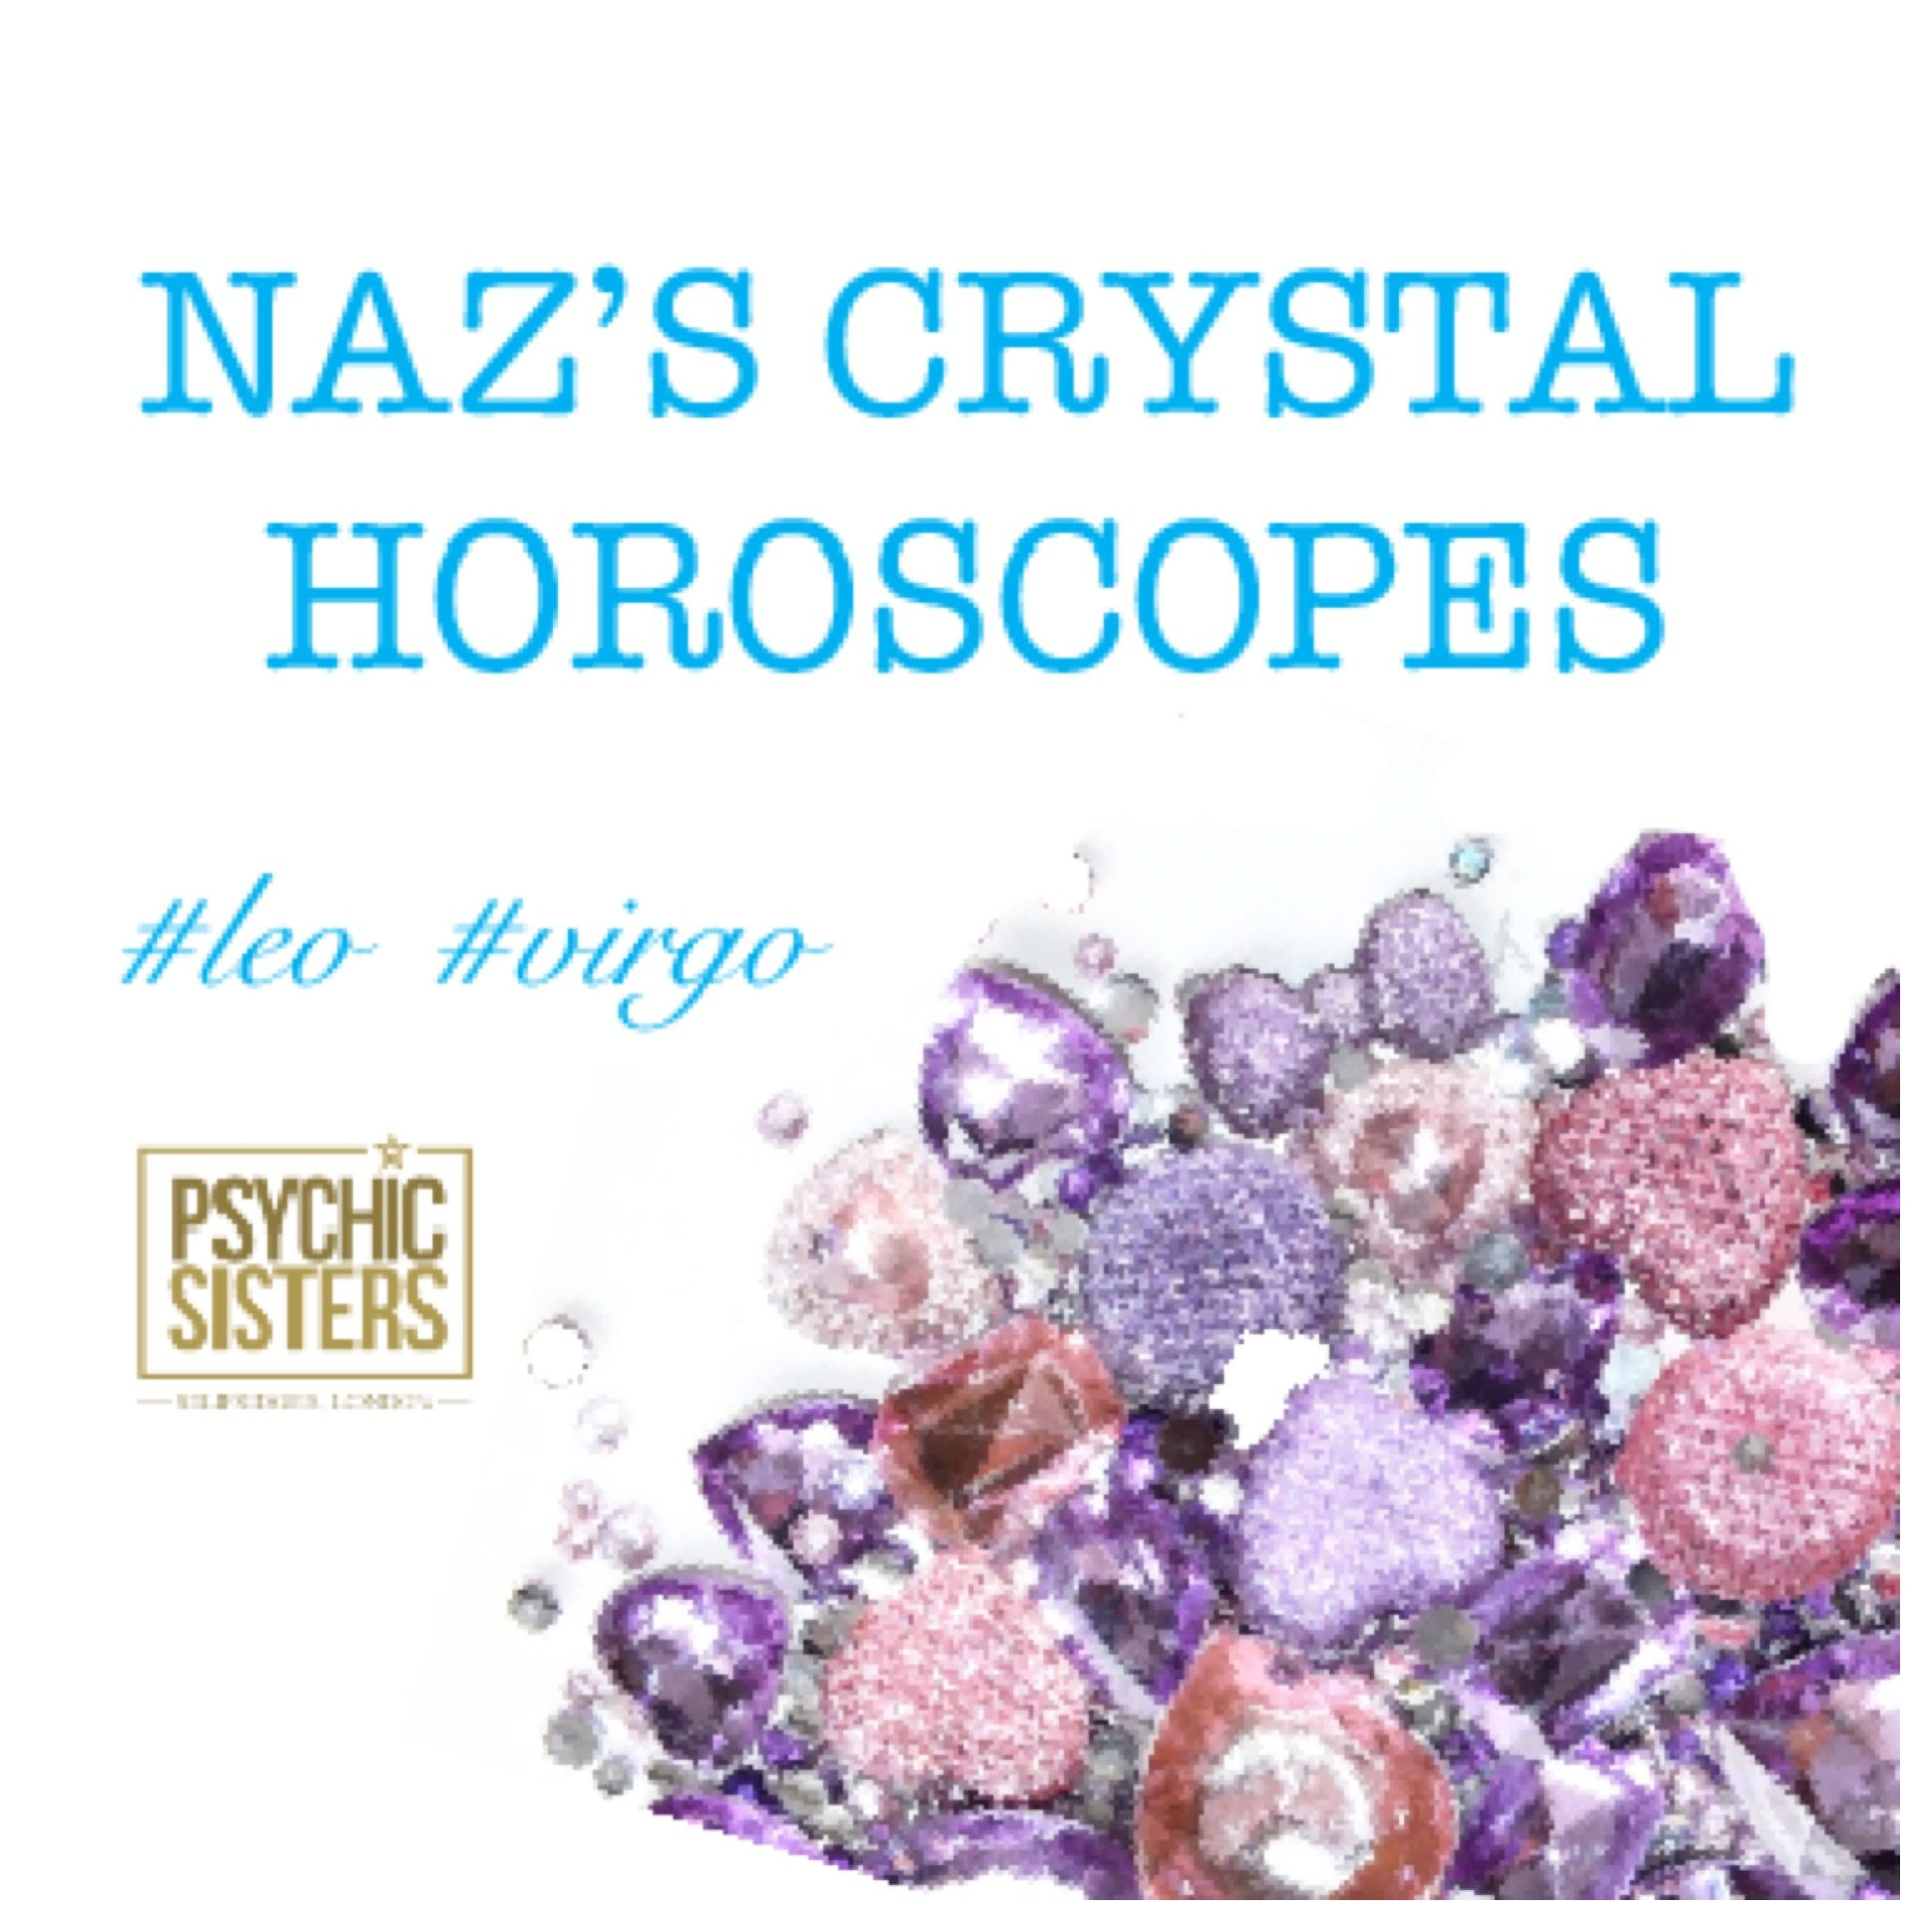 Naz's crystal horoscopes 18th March - 24th March 2018